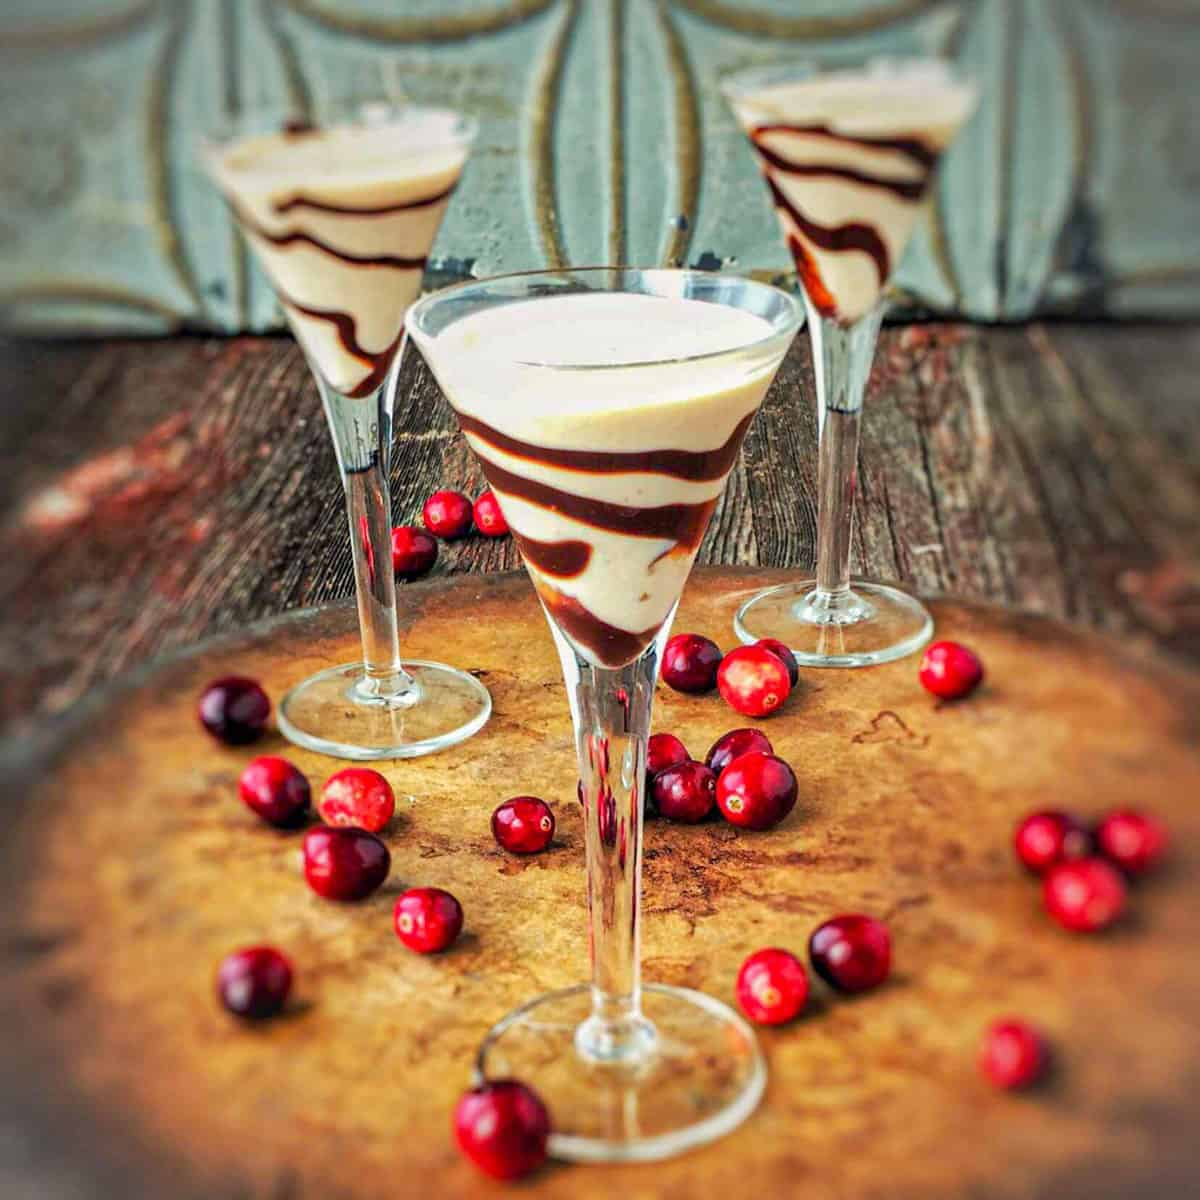 Homemade baileys shown in 3 stemmed glasses with chocolate swirled on the glass and cranberry on the wooden table below.